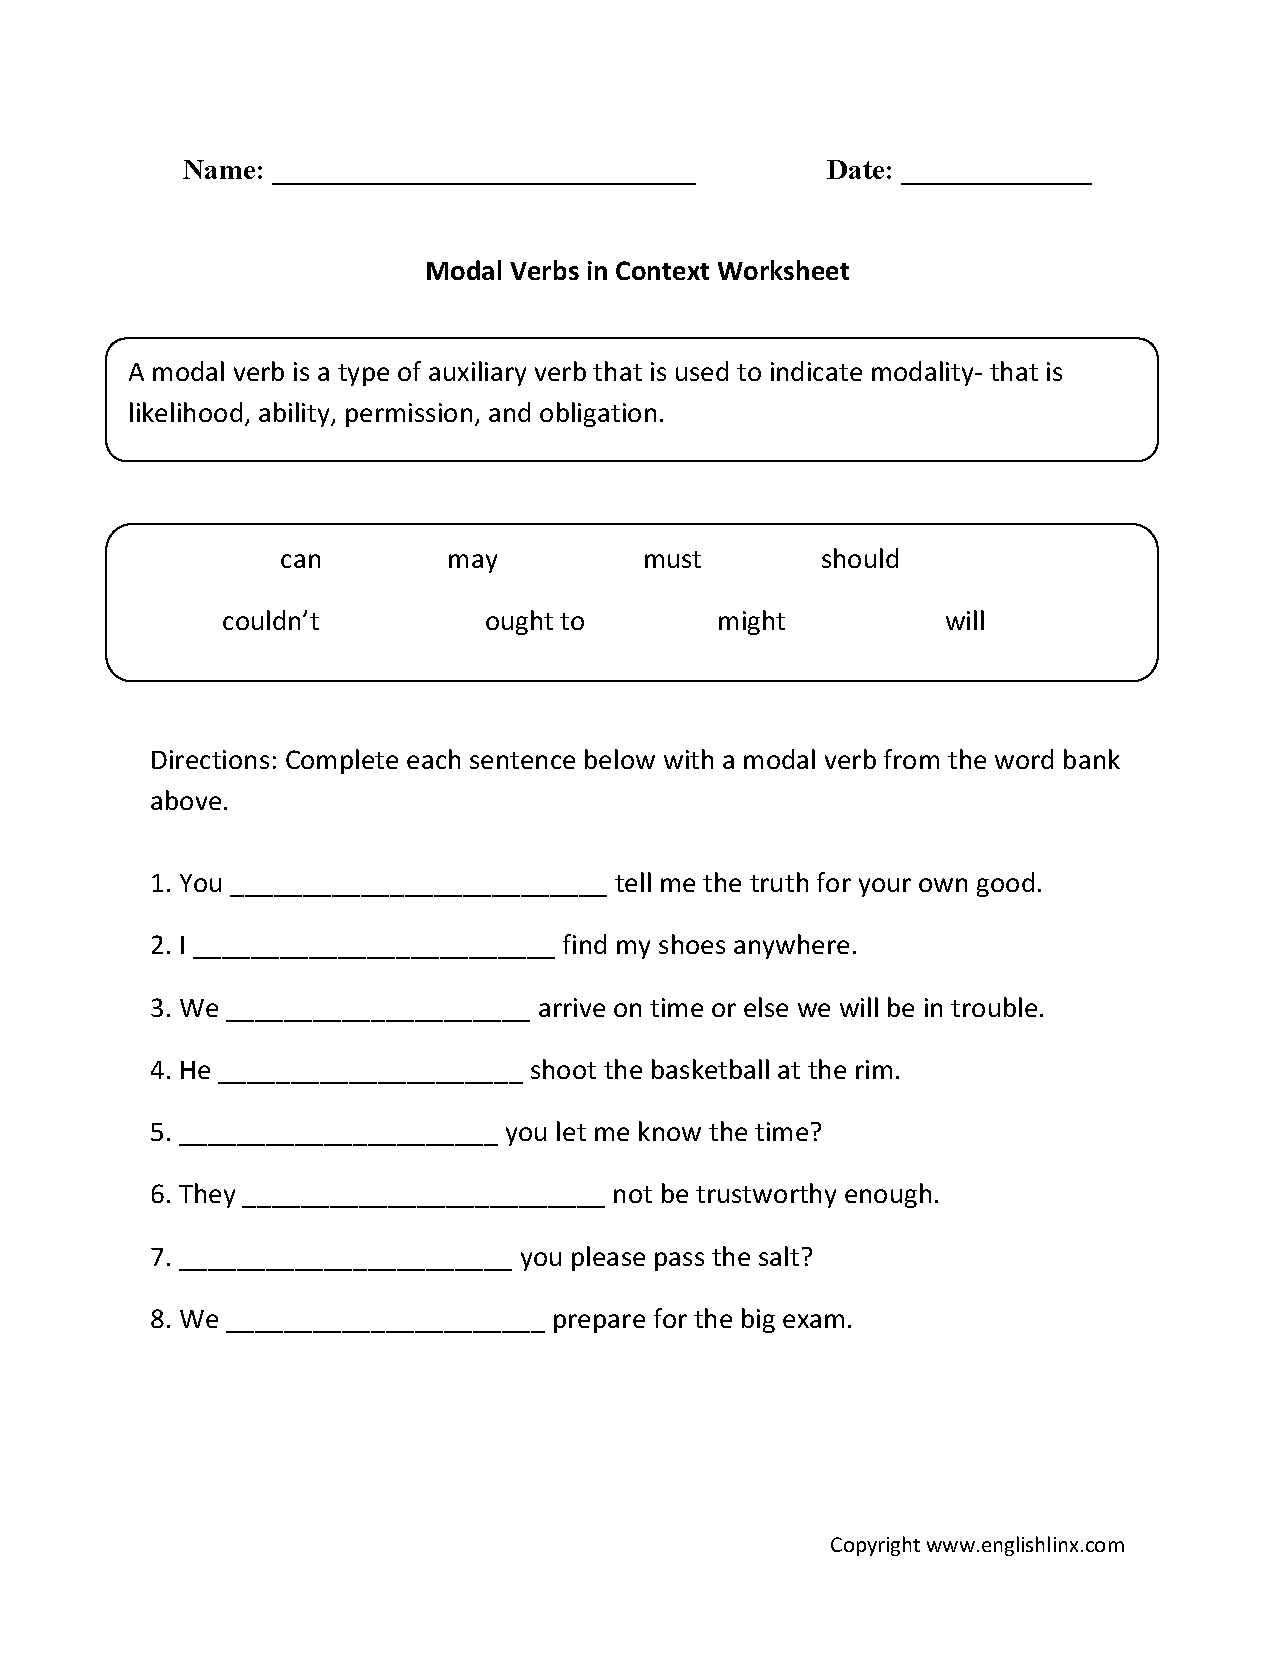 Aldiablosus  Fascinating Worksheet On Verb  Coffemix With Engaging Englishlinxcom  Verbs Worksheets With Appealing Math For First Grade Worksheets Also Principal Parts Of Irregular Verbs Worksheet In Addition Easter Egg Worksheets And Free Printable Budget Worksheet Template As Well As Free Extreme Dot To Dot Printable Worksheets Additionally Derivatives Practice Worksheet From Coffemixcom With Aldiablosus  Engaging Worksheet On Verb  Coffemix With Appealing Englishlinxcom  Verbs Worksheets And Fascinating Math For First Grade Worksheets Also Principal Parts Of Irregular Verbs Worksheet In Addition Easter Egg Worksheets From Coffemixcom